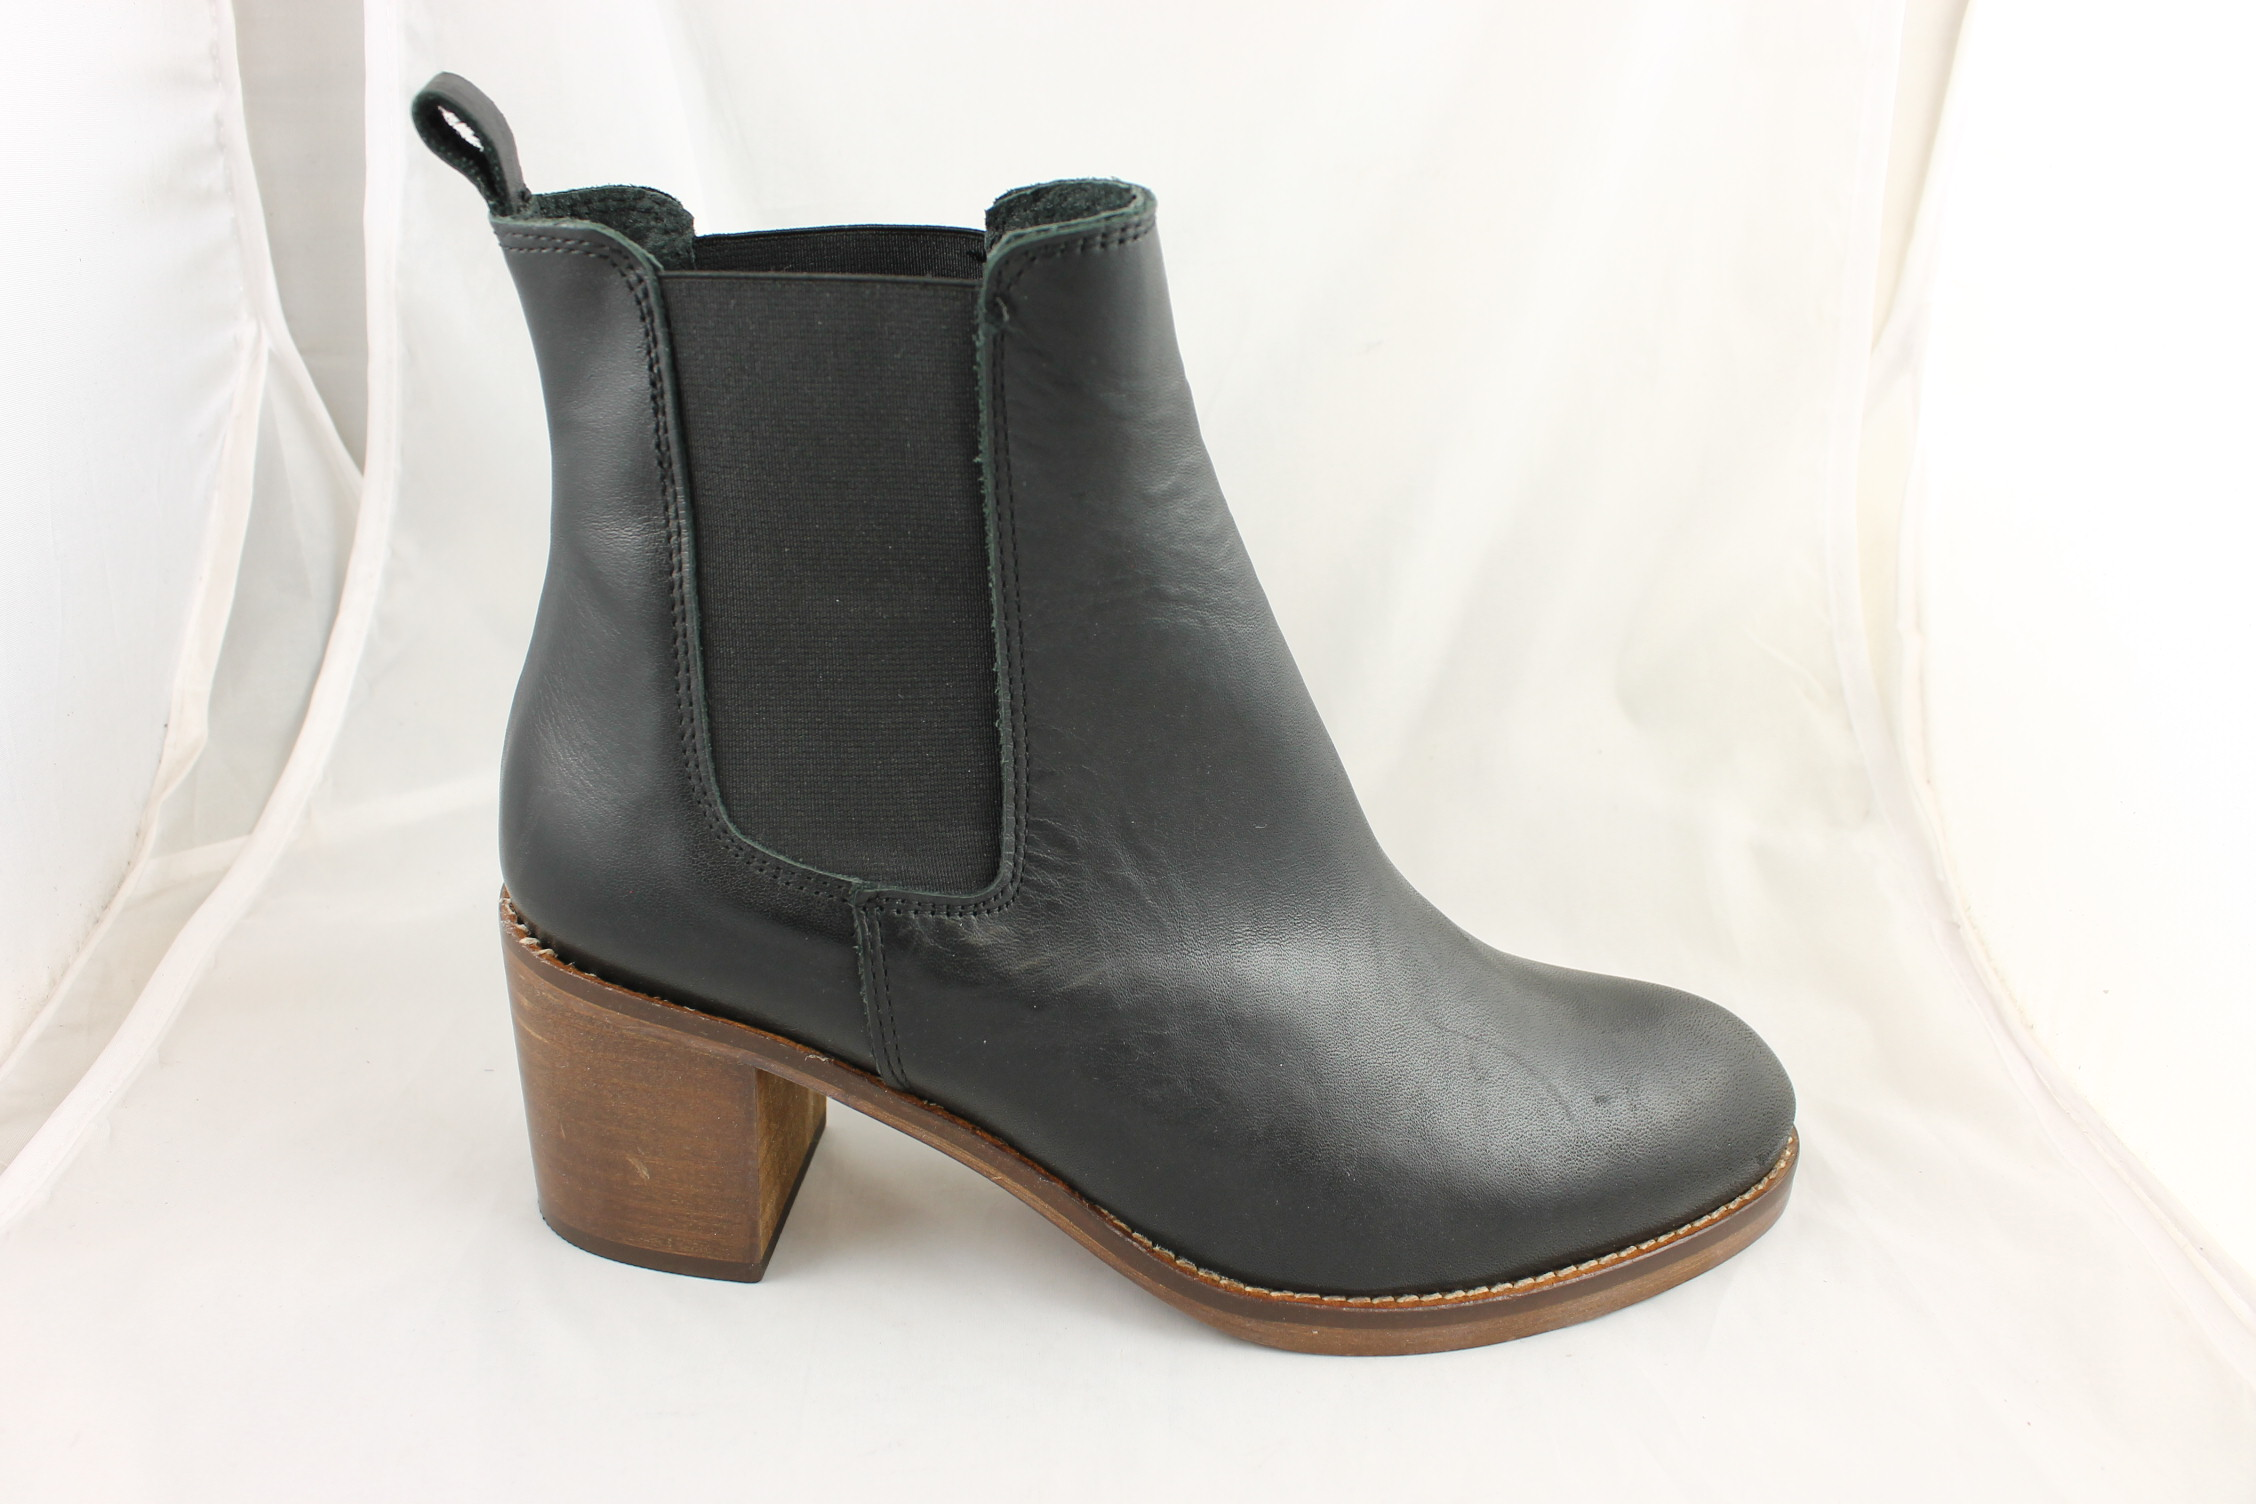 Up for your consideration is a used pair of Ecco Black Leather Chelsea Heeled Split Toe Ankle Boots Booties Size 40 EUR in good used condition. Womens Vintage Zipper Ankle Chelsea Boots Mid Block Heel Casual Dress Shoes.